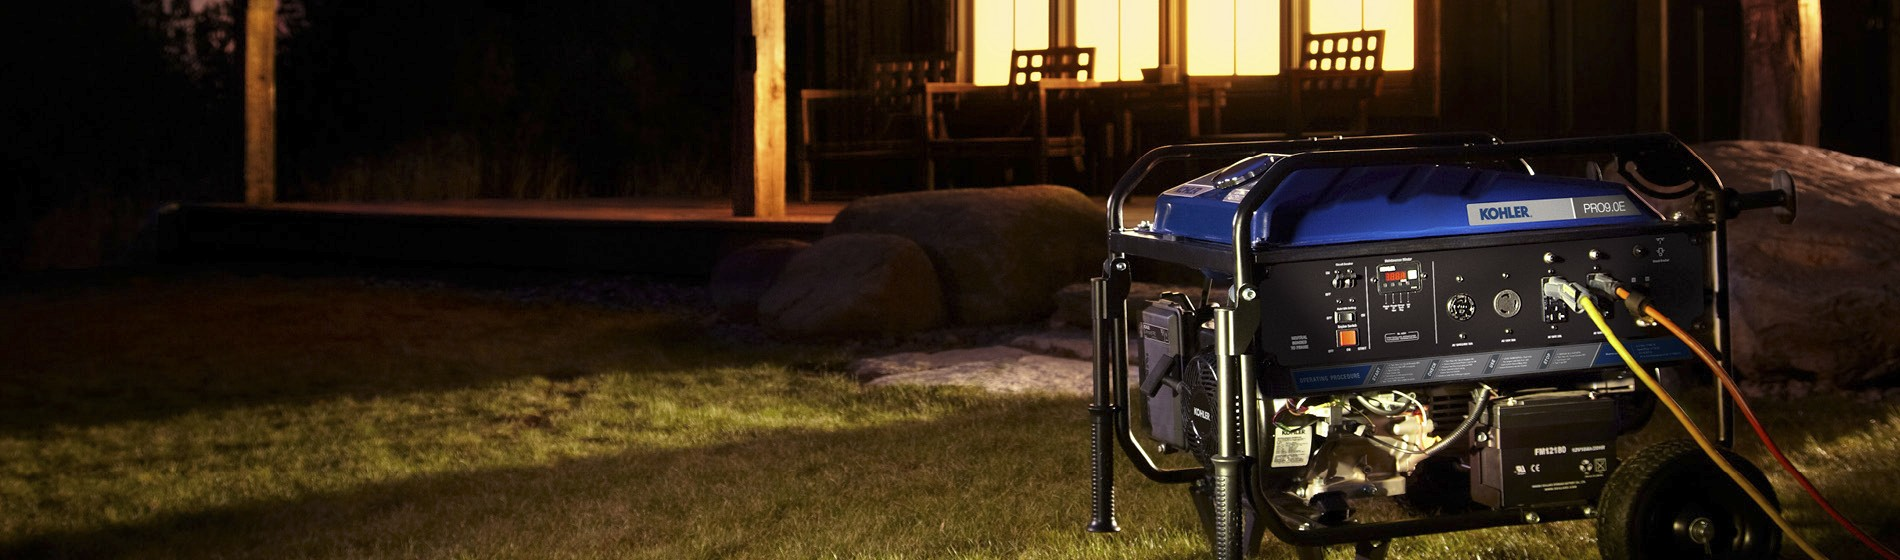 House at night with lights on and KOHLER generator